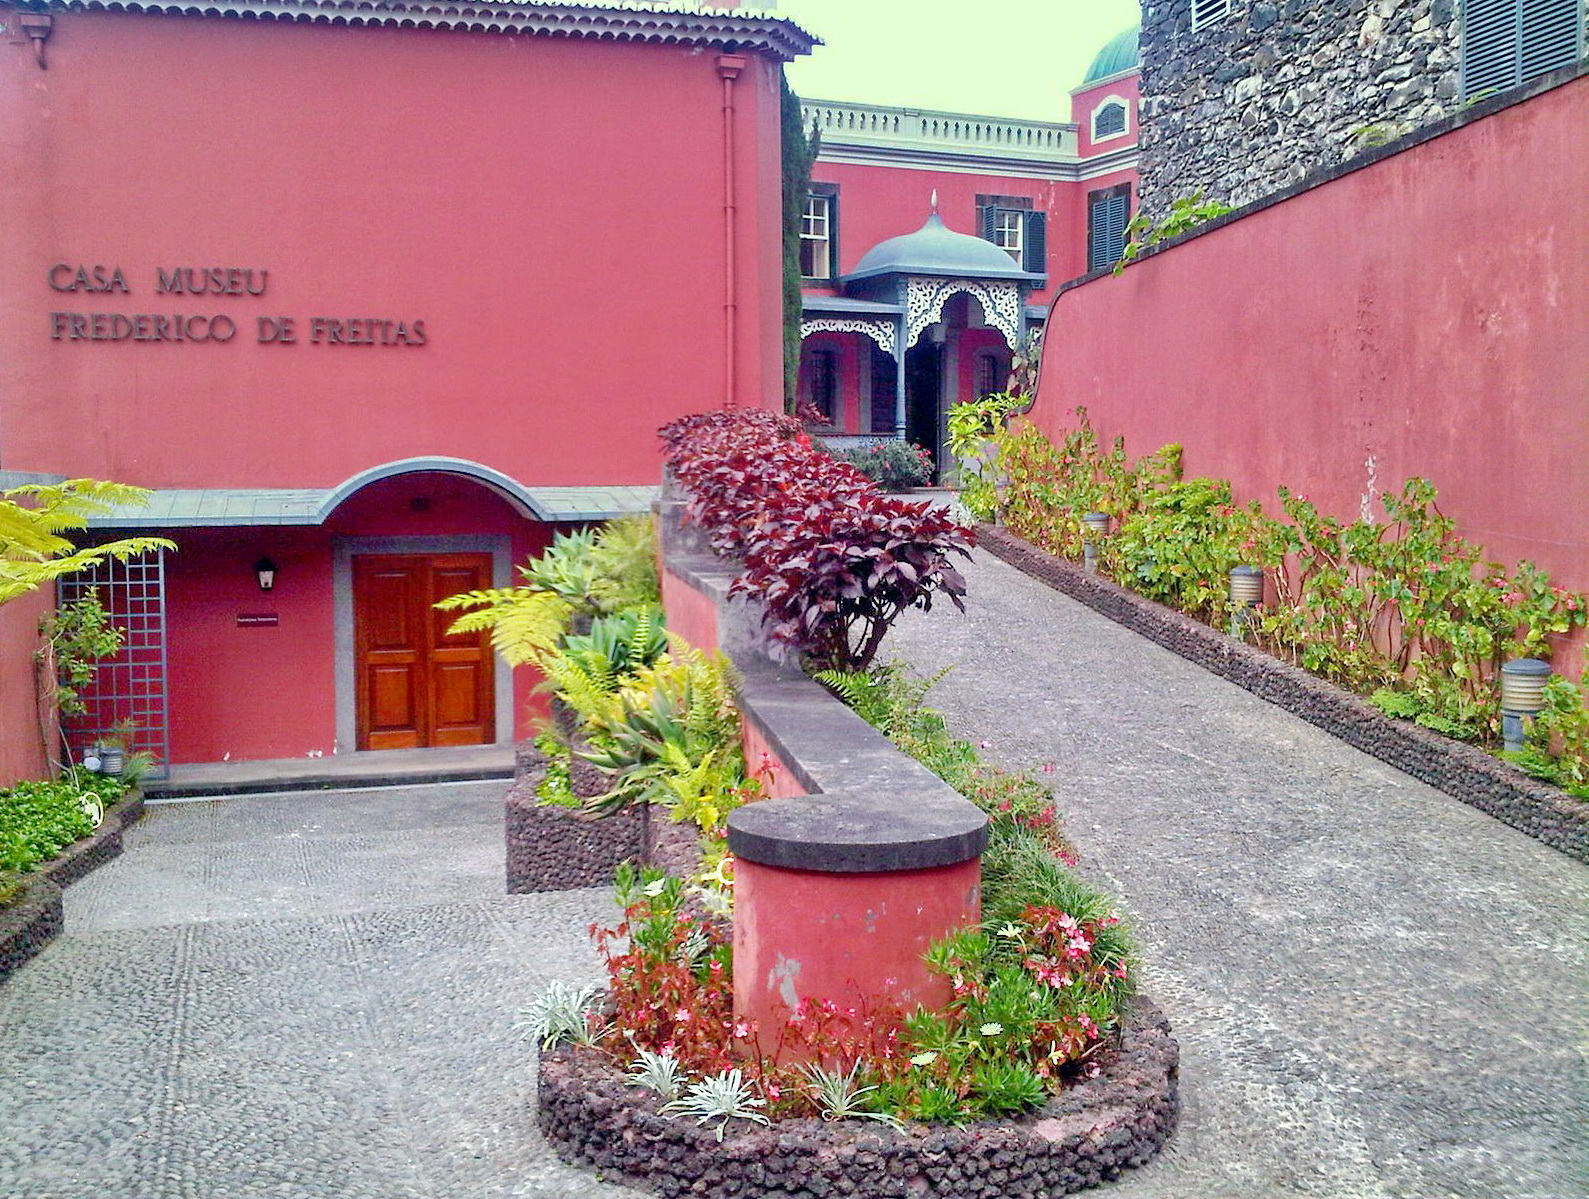 a museum to see many wonderful collections